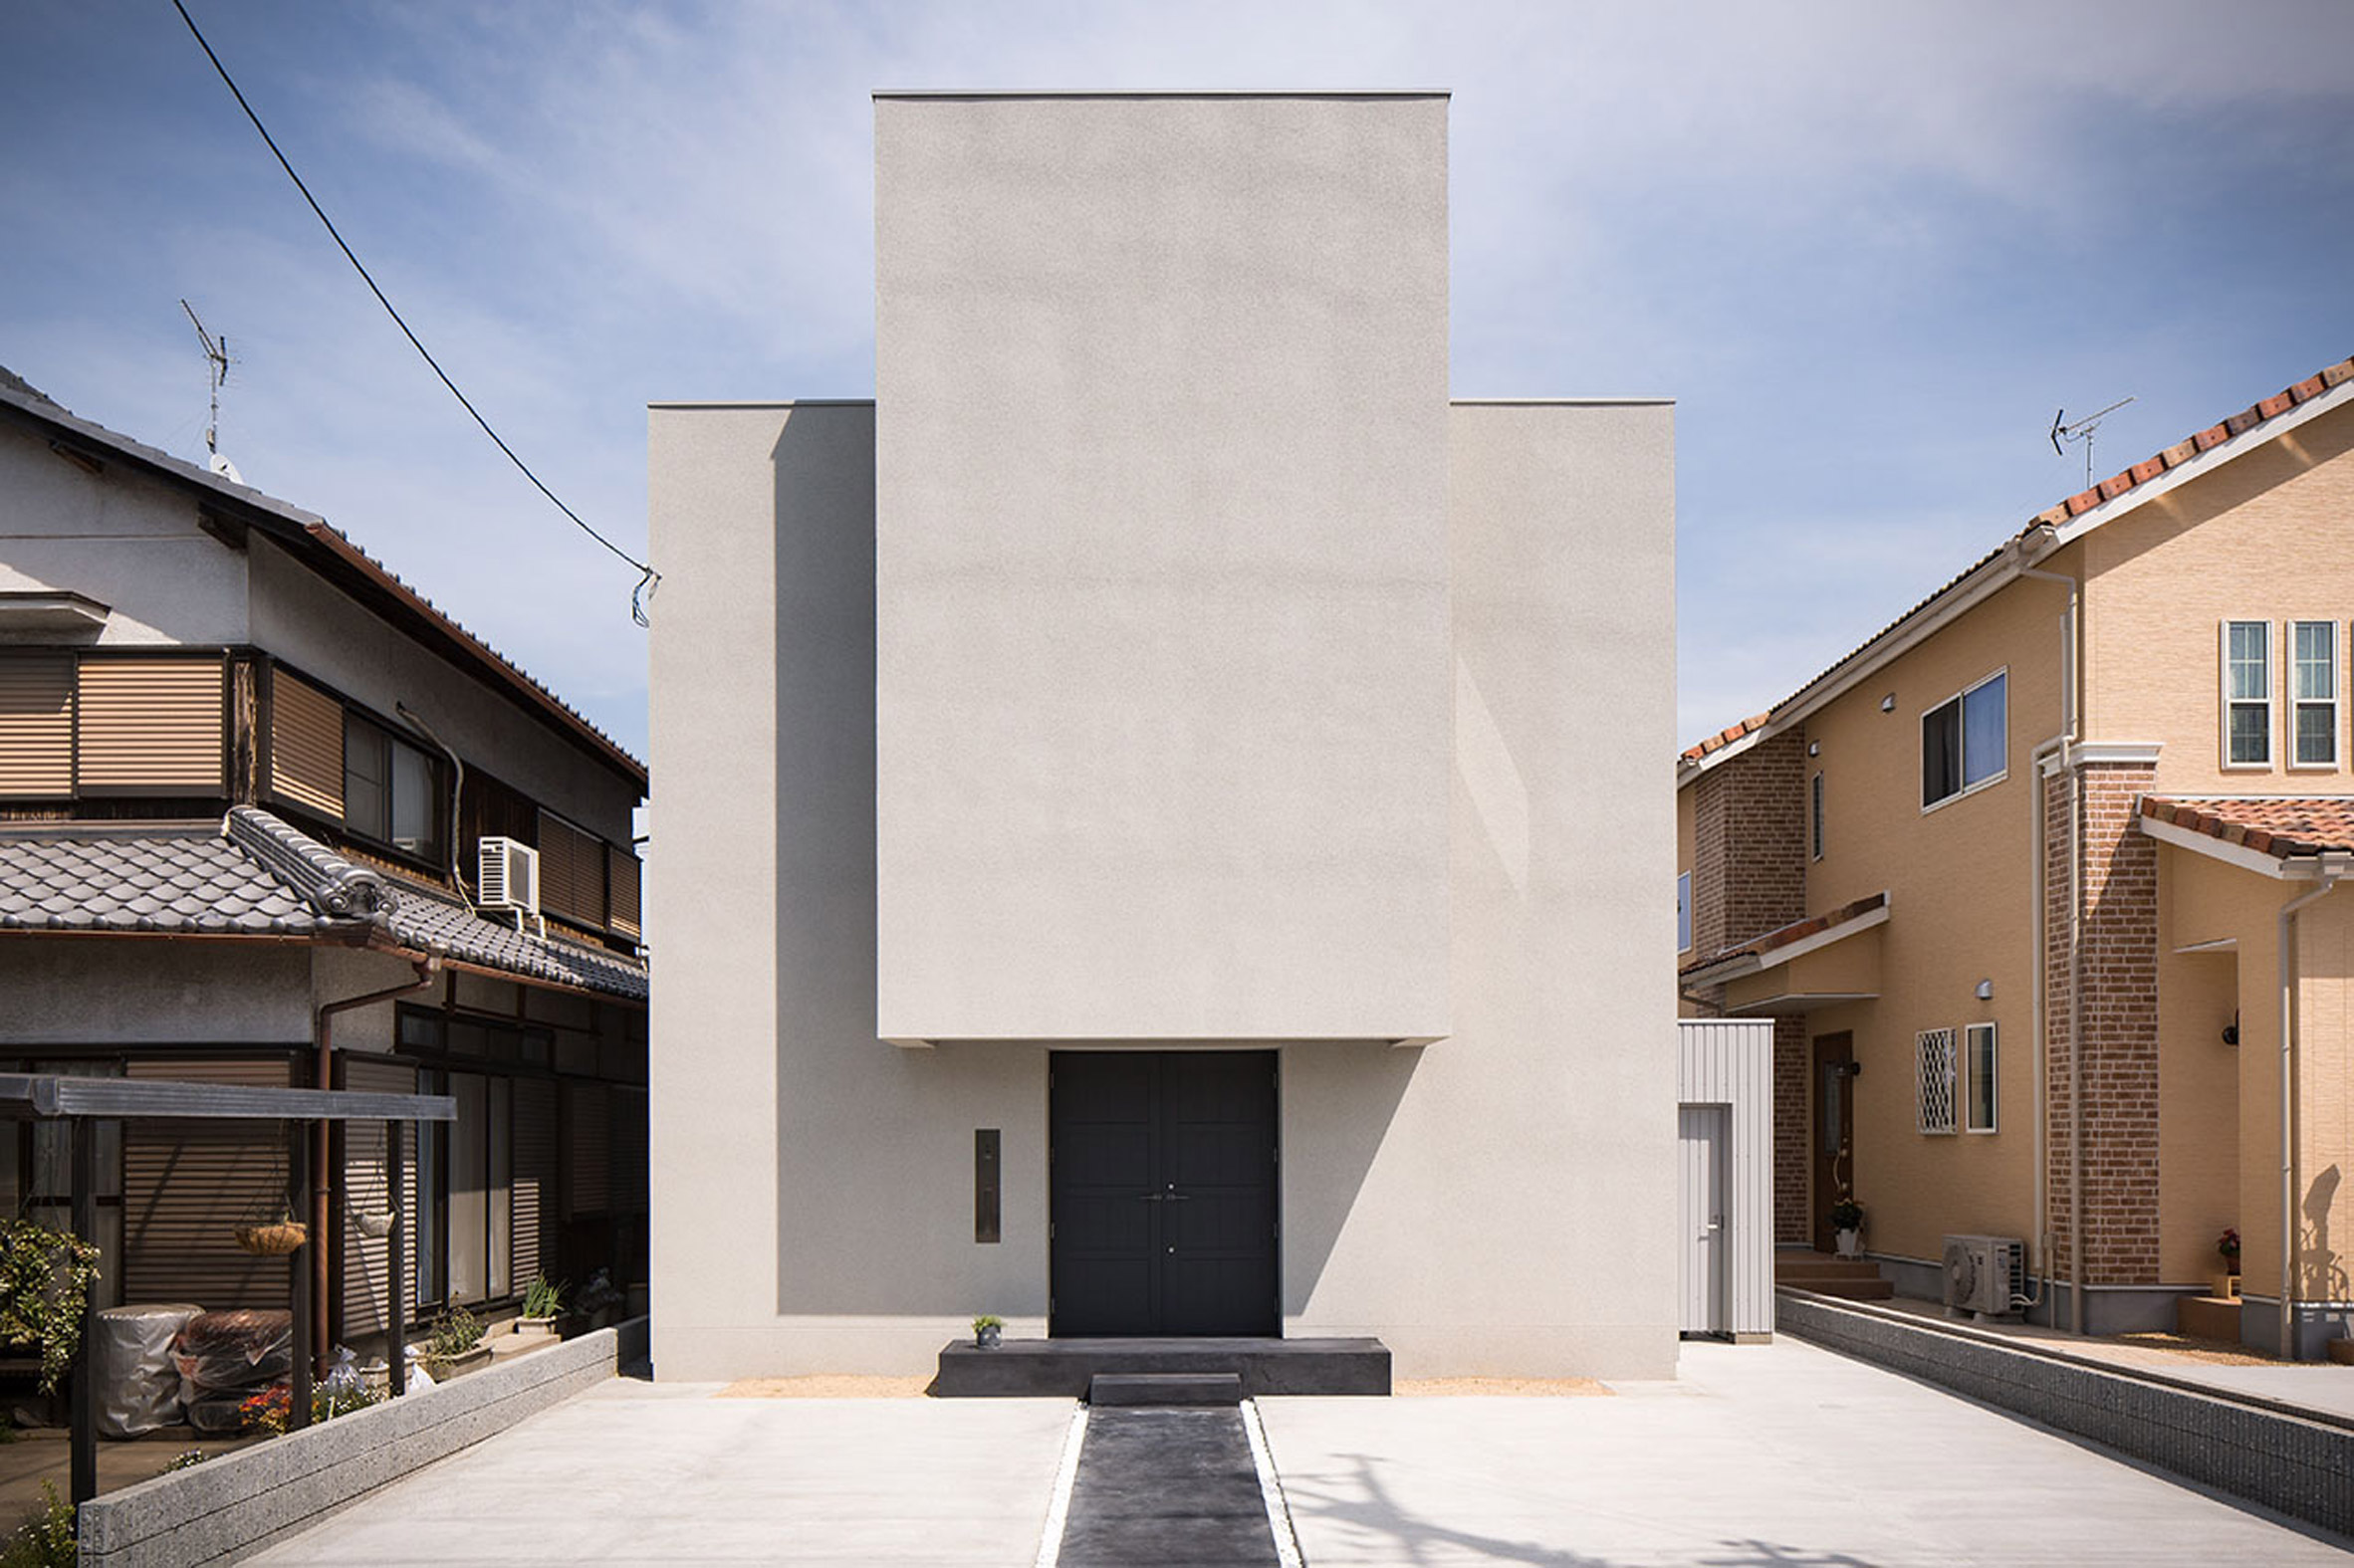 Japanese house by Kouichi Kimura includes white-tiled courtyard for yoga